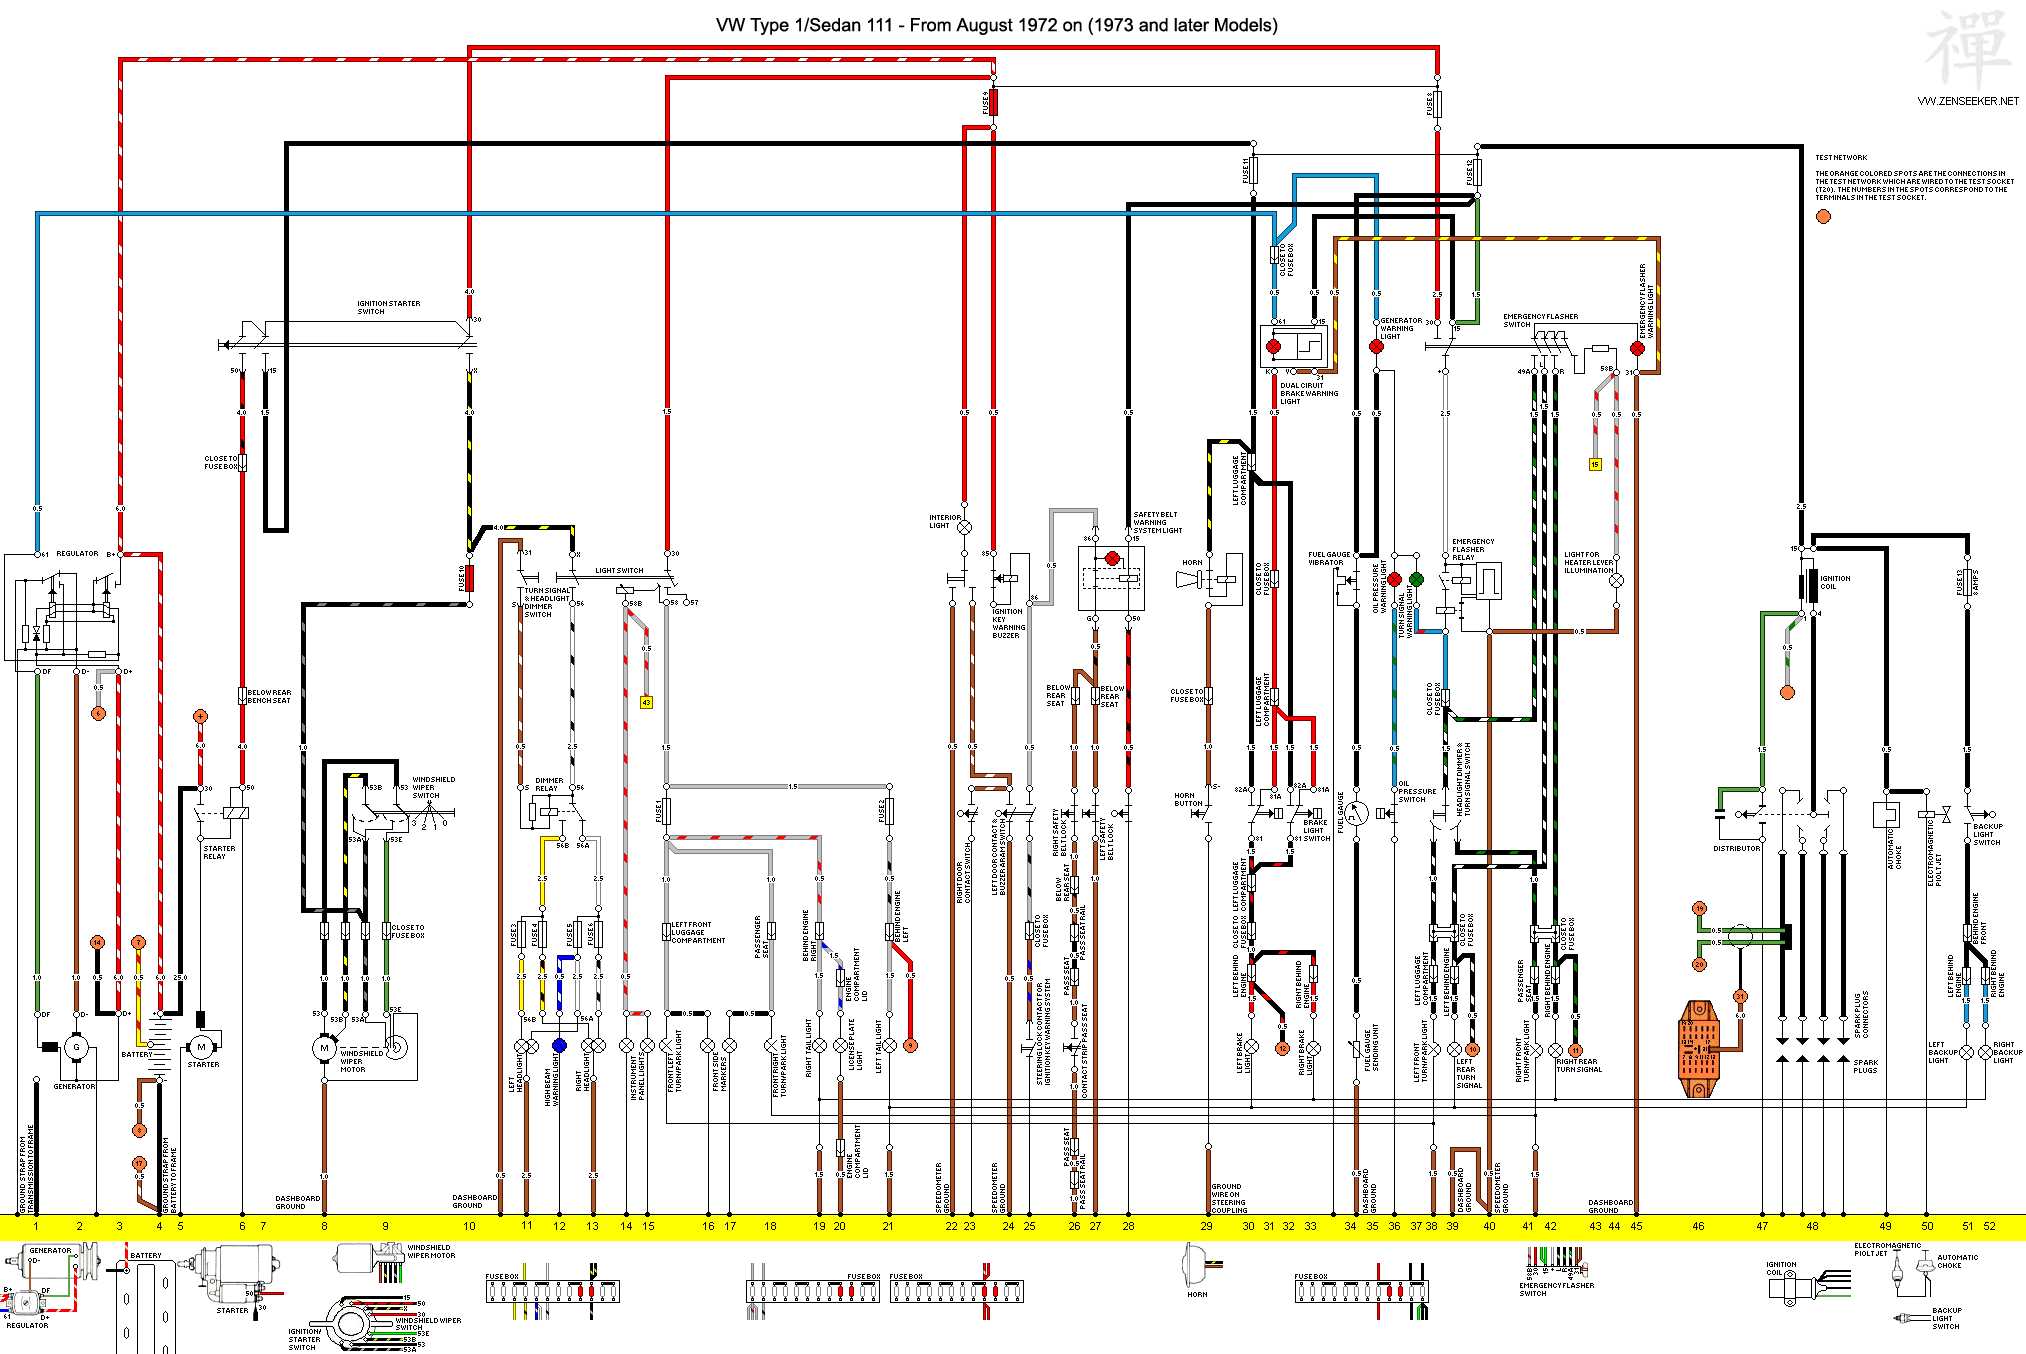 Wiring Diagram To Match The Wire Colors To The Relay On Your Van To